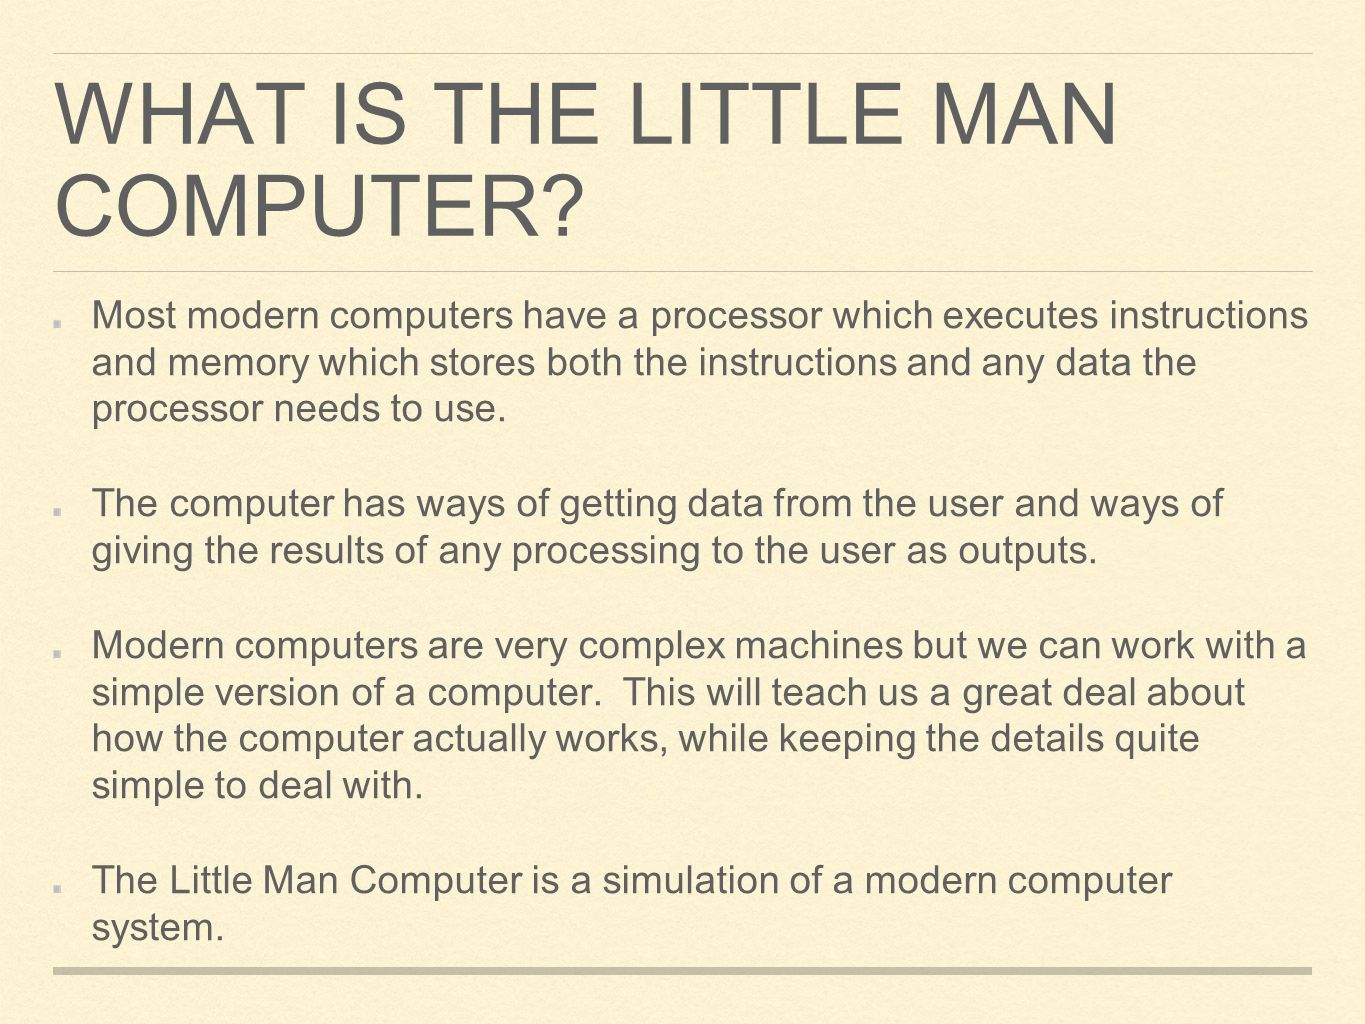 What is the Little Man Computer